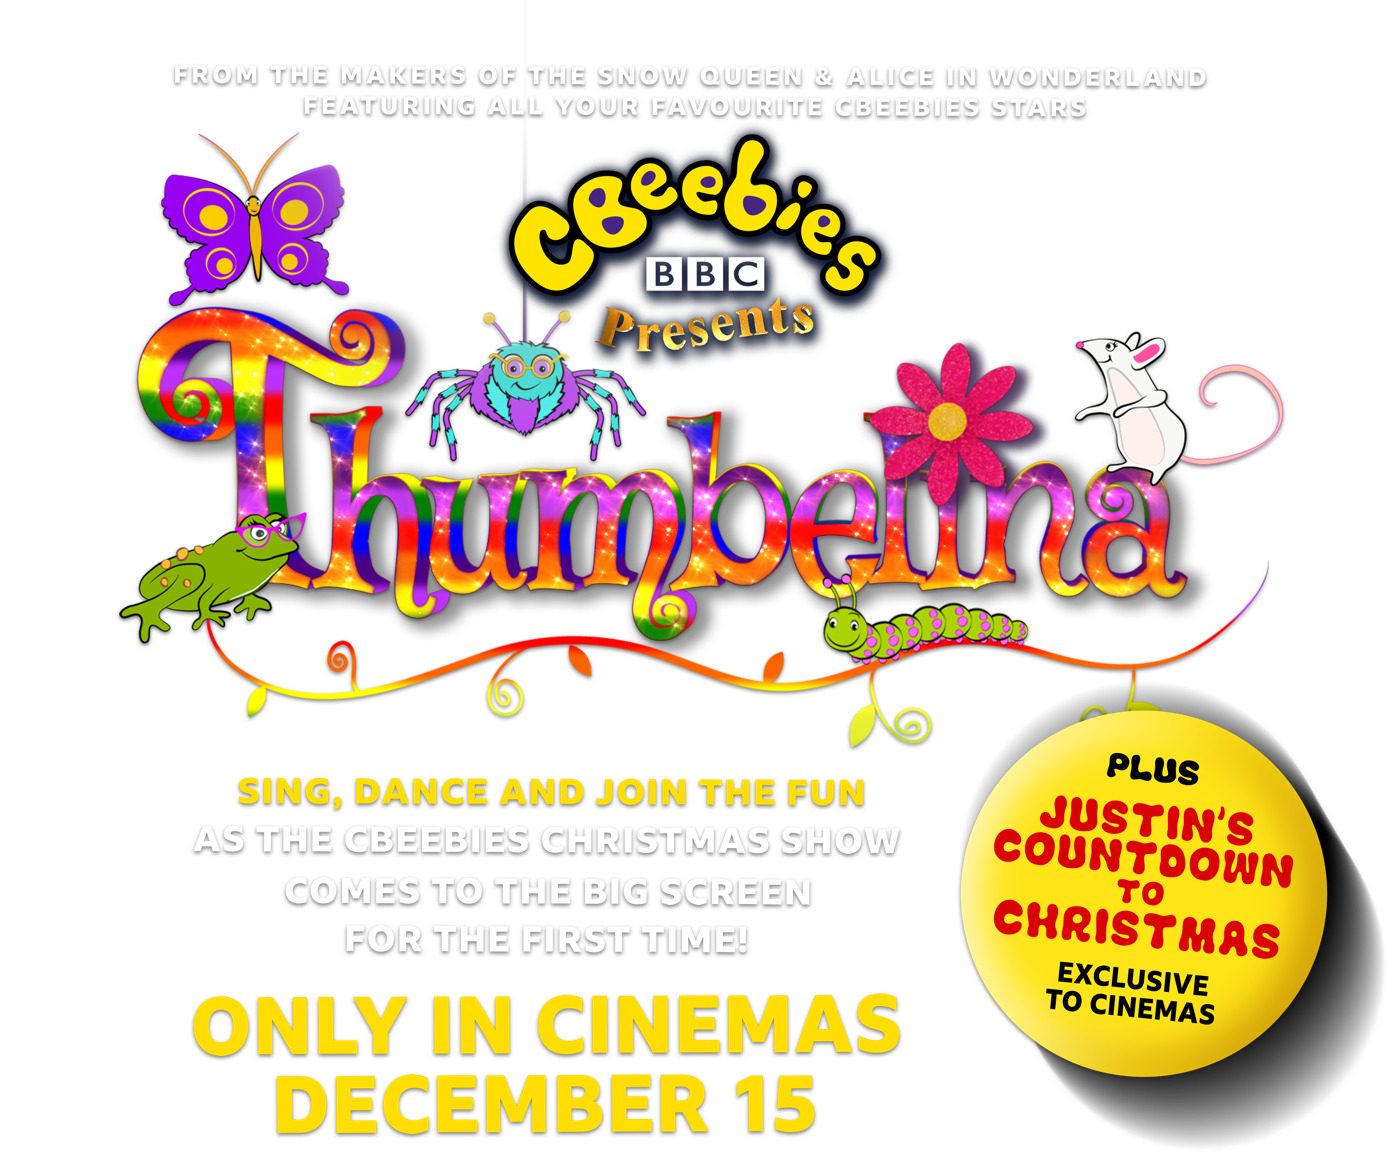 CBeebies Presents Thumbelina : Synopsis | Modern Films